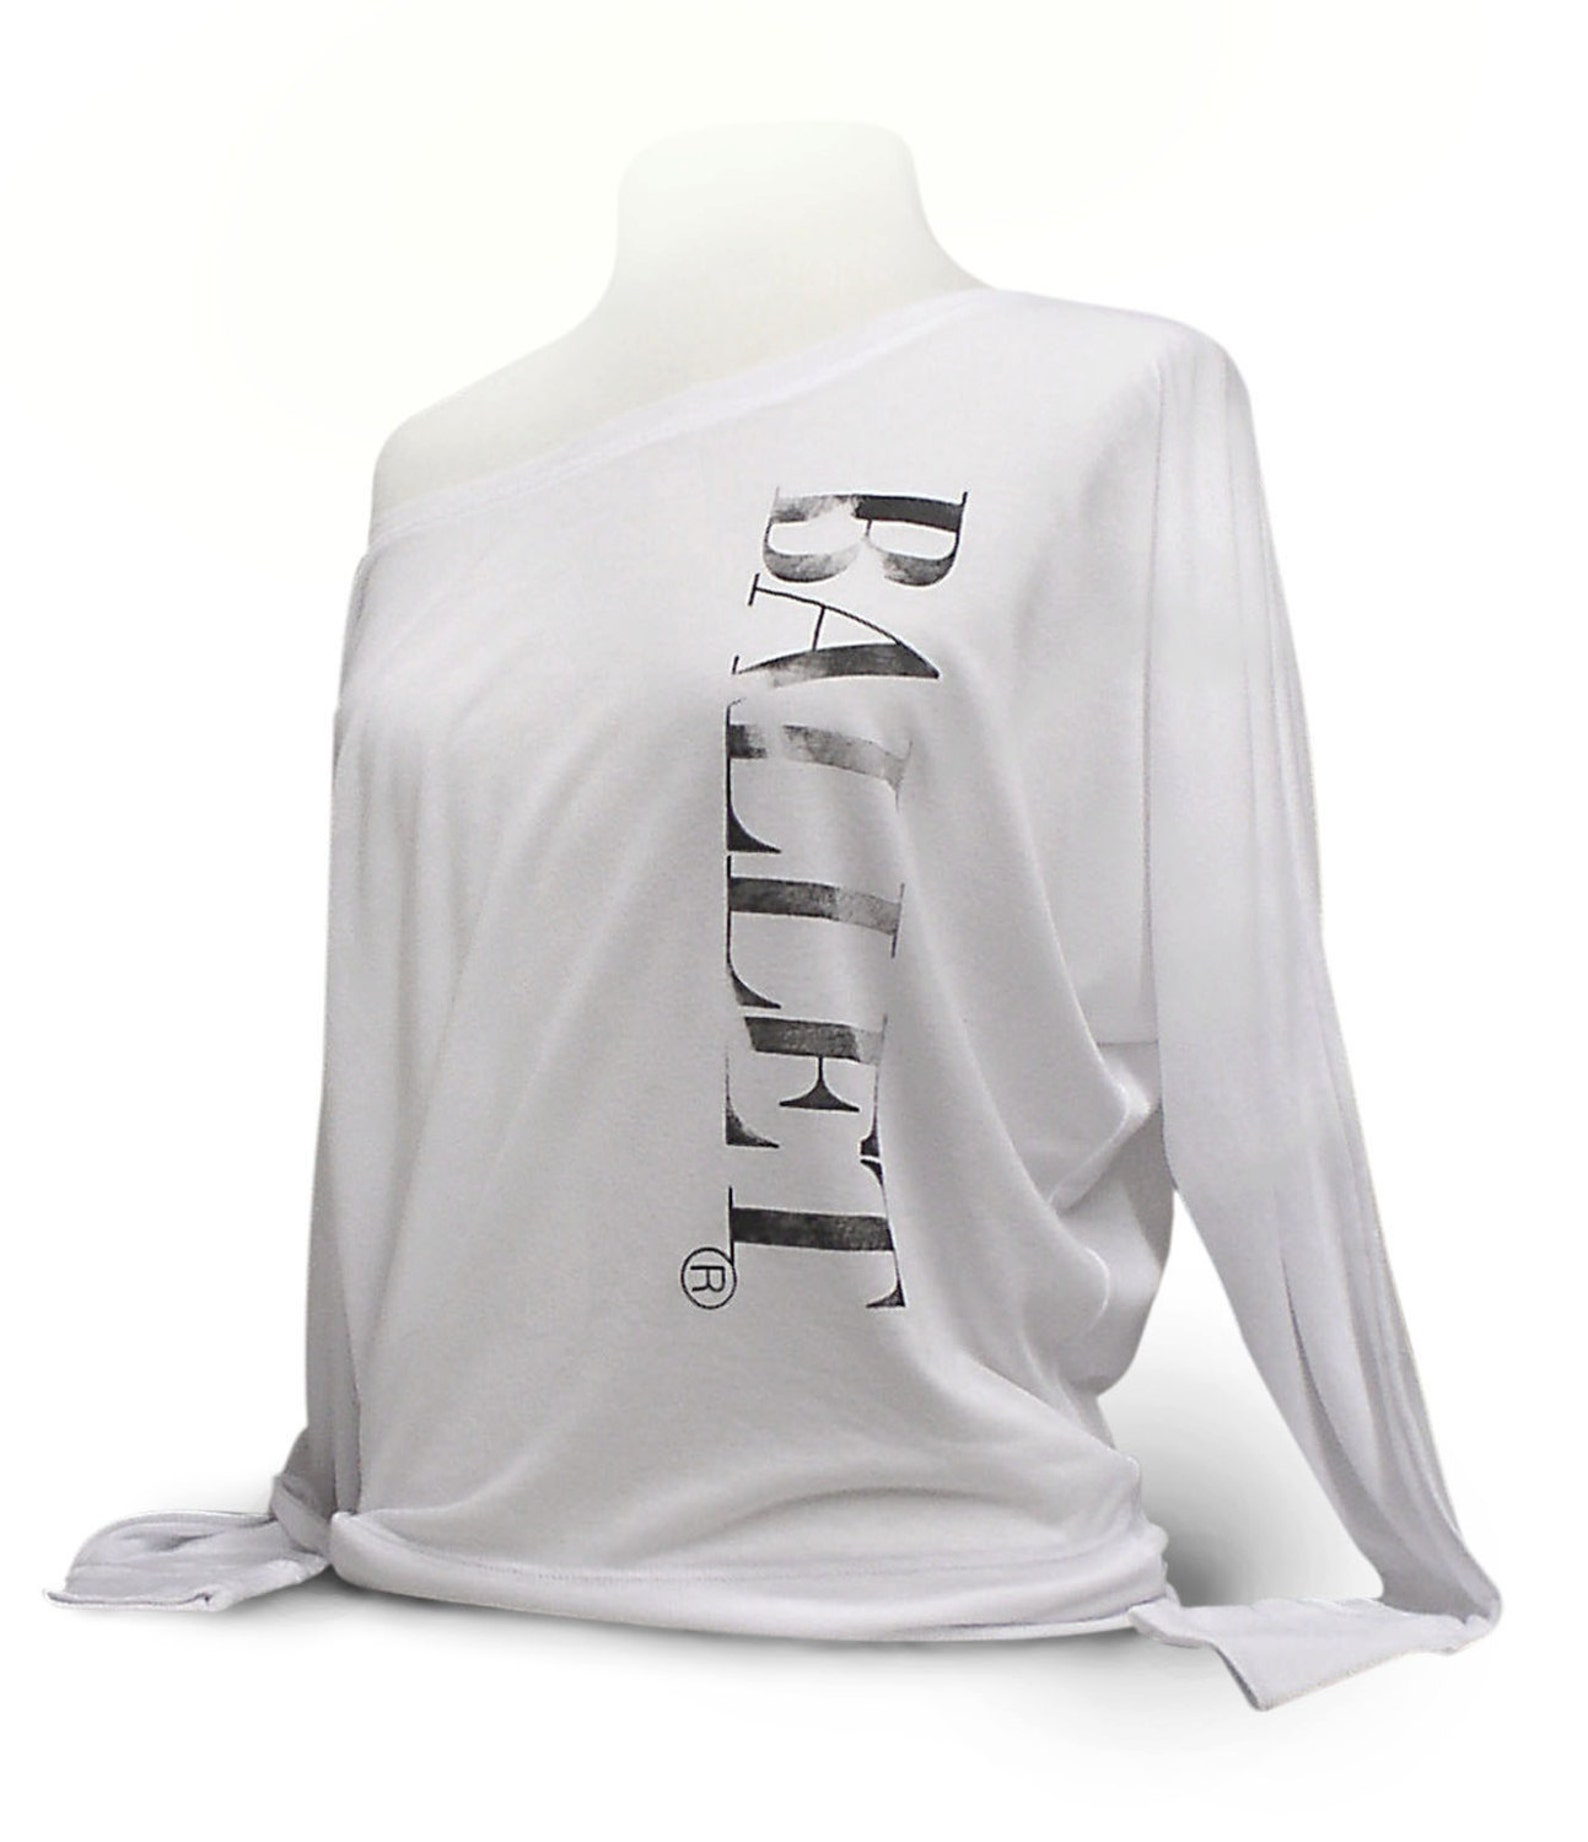 upscale ballet top. ballet shirt. white leotard coverup. flowy long sleeve dance shirt